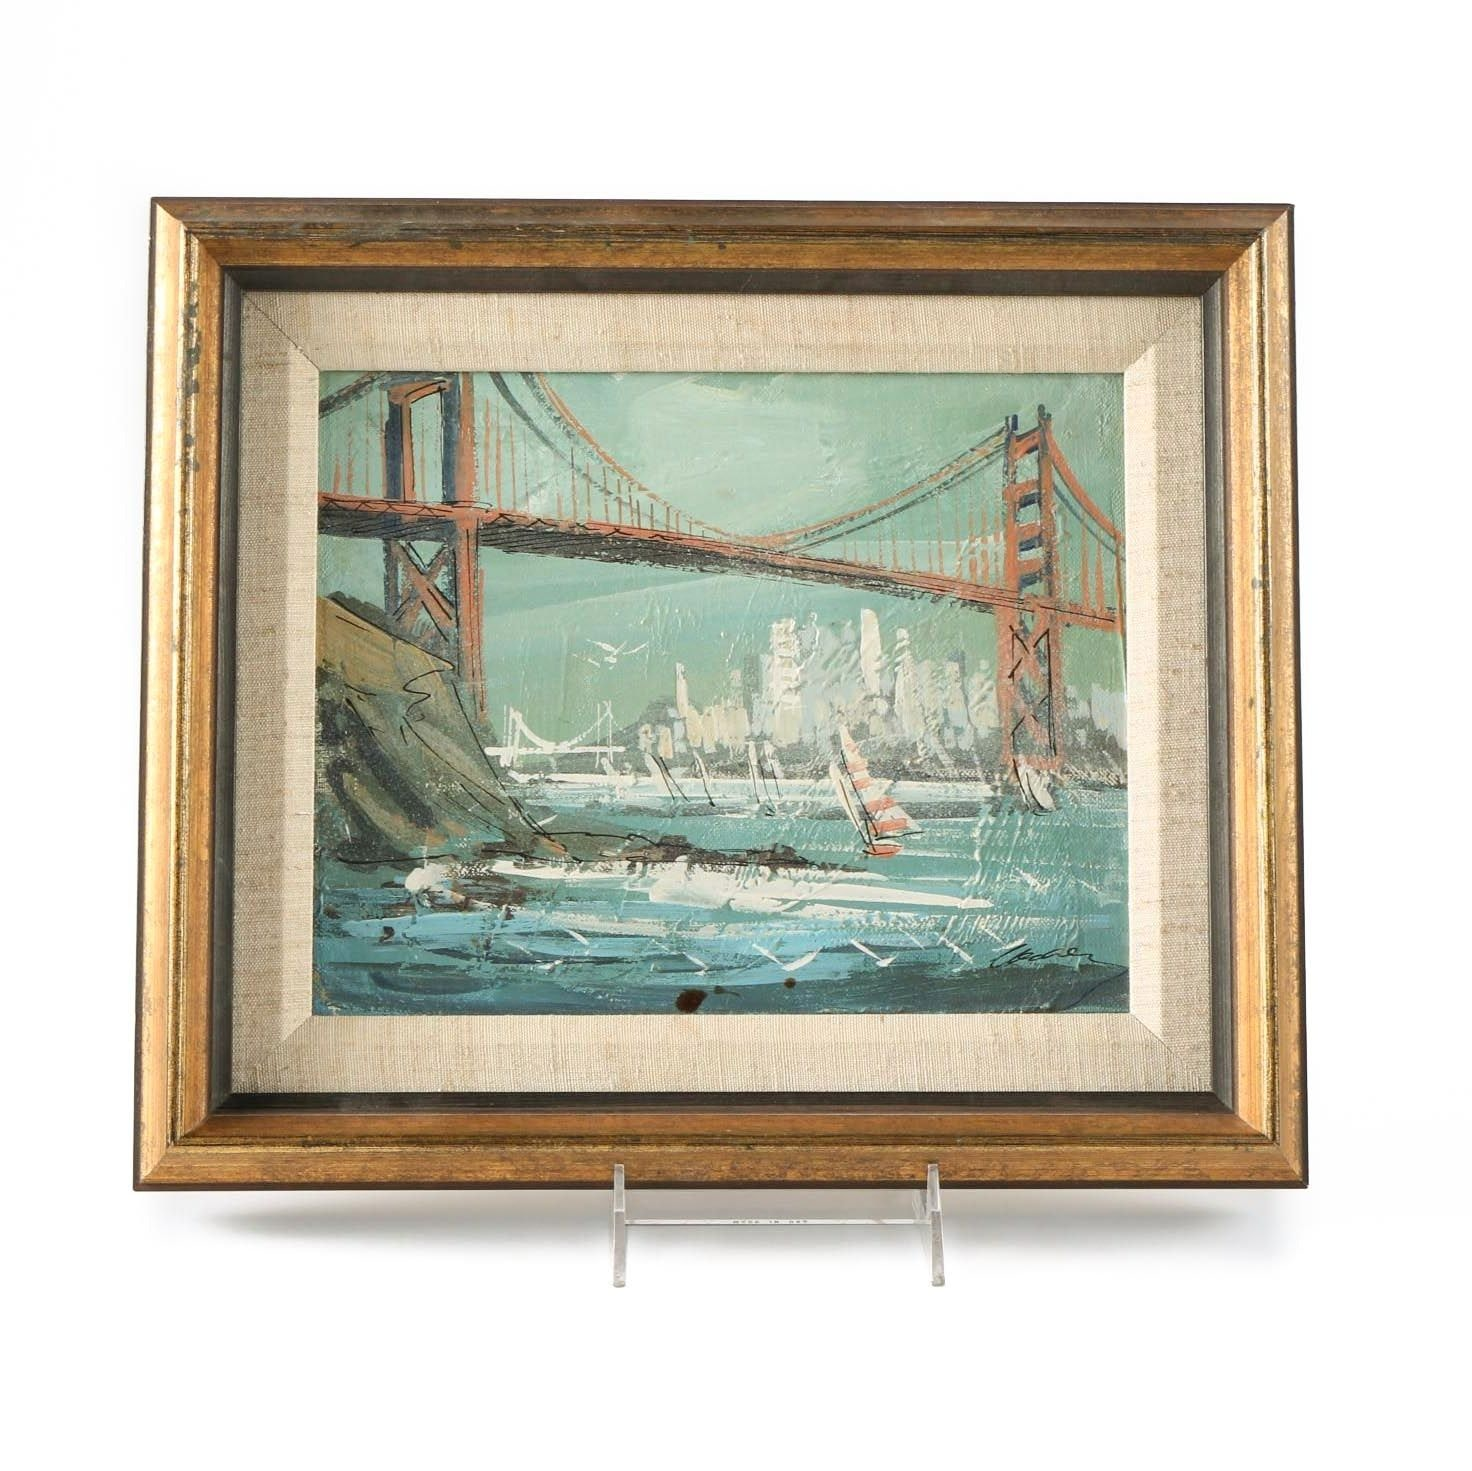 Oil Painting on Board of the Golden Gate Bridge